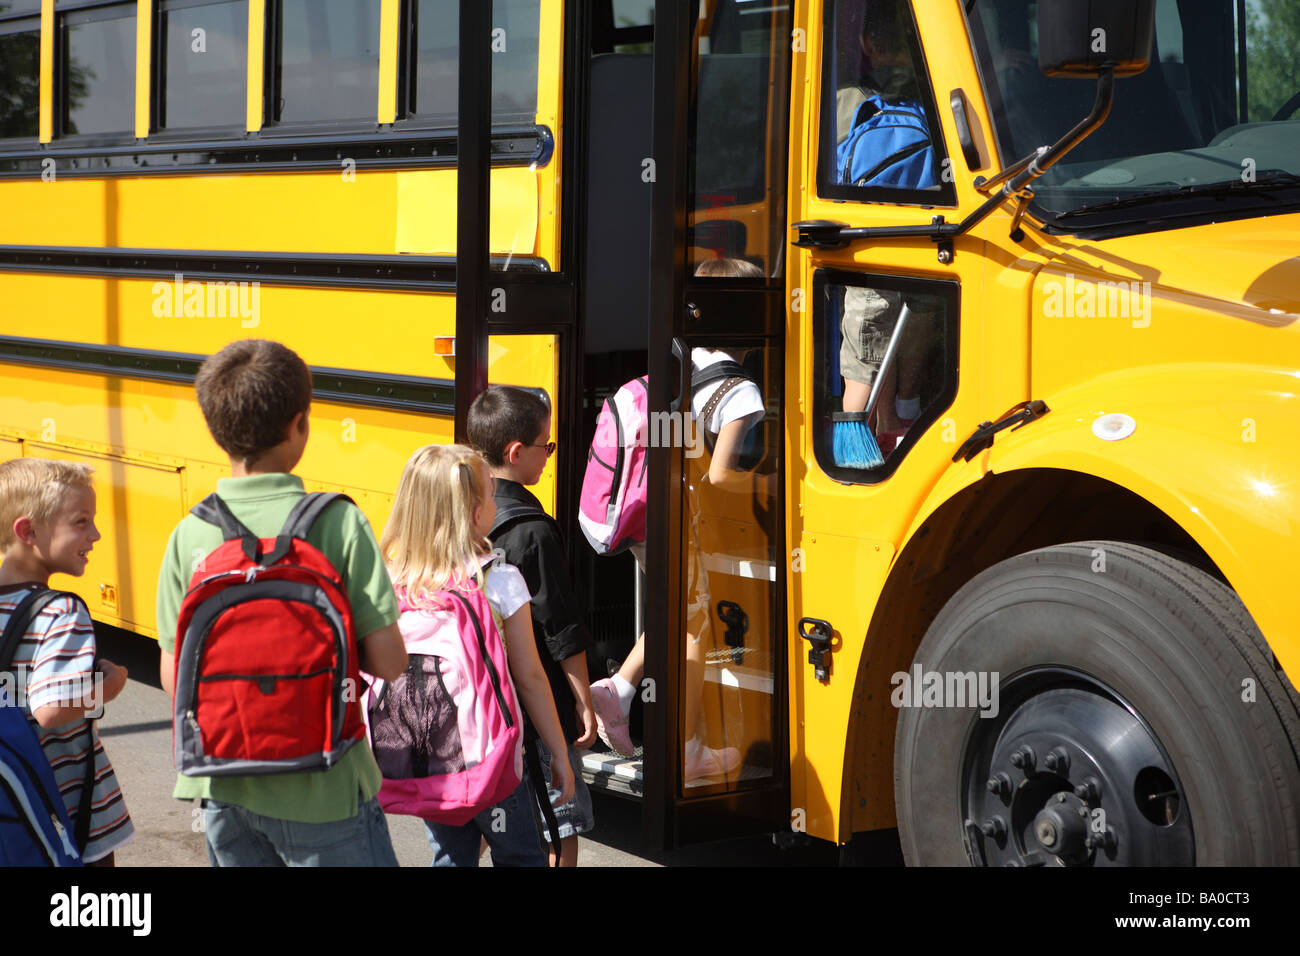 Children getting on school bus - Stock Image